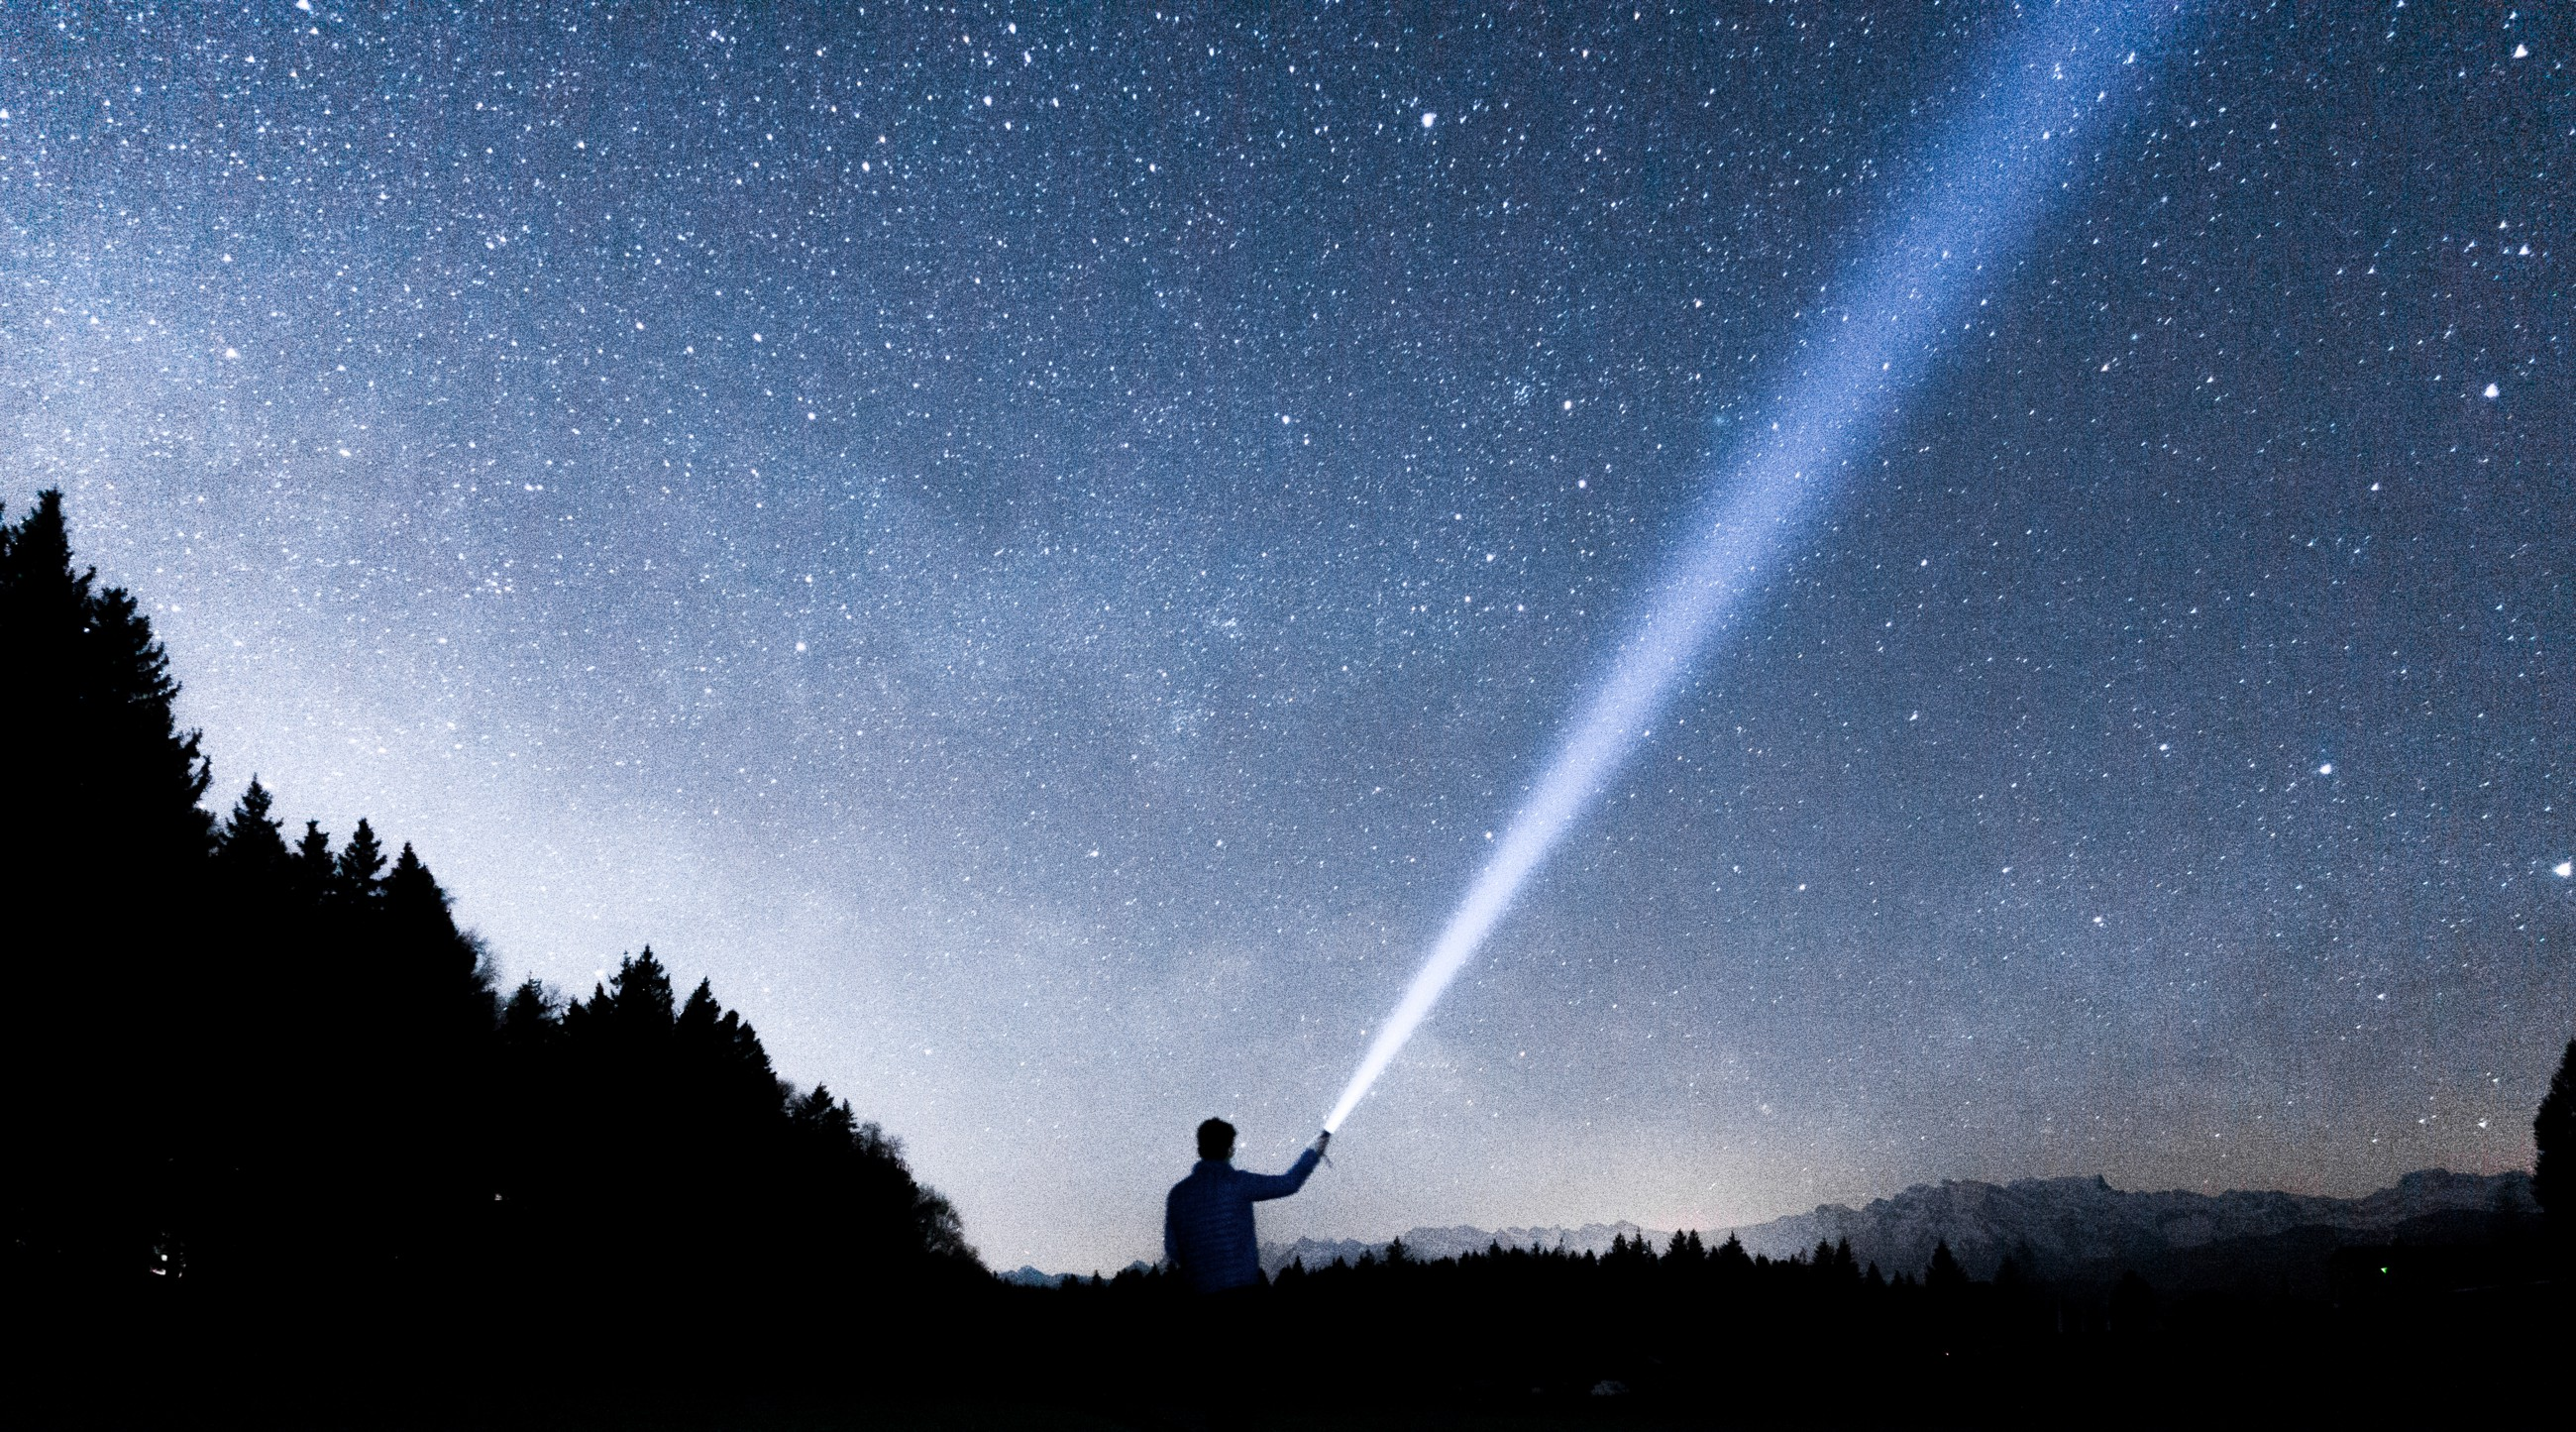 The Strangely Human Messages We Send To Aliens The Possibility Of